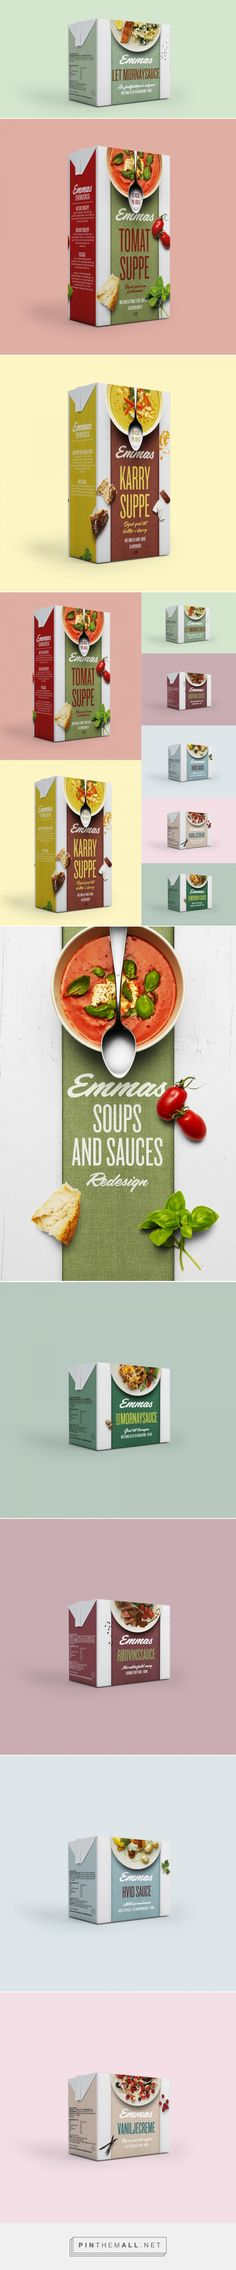 Love this packaging! Great use of fonts, colors, textures and photography. - Emmas Soups and Sauces — The Dieline - Branding & Packaging - created via https://pinthemall.net